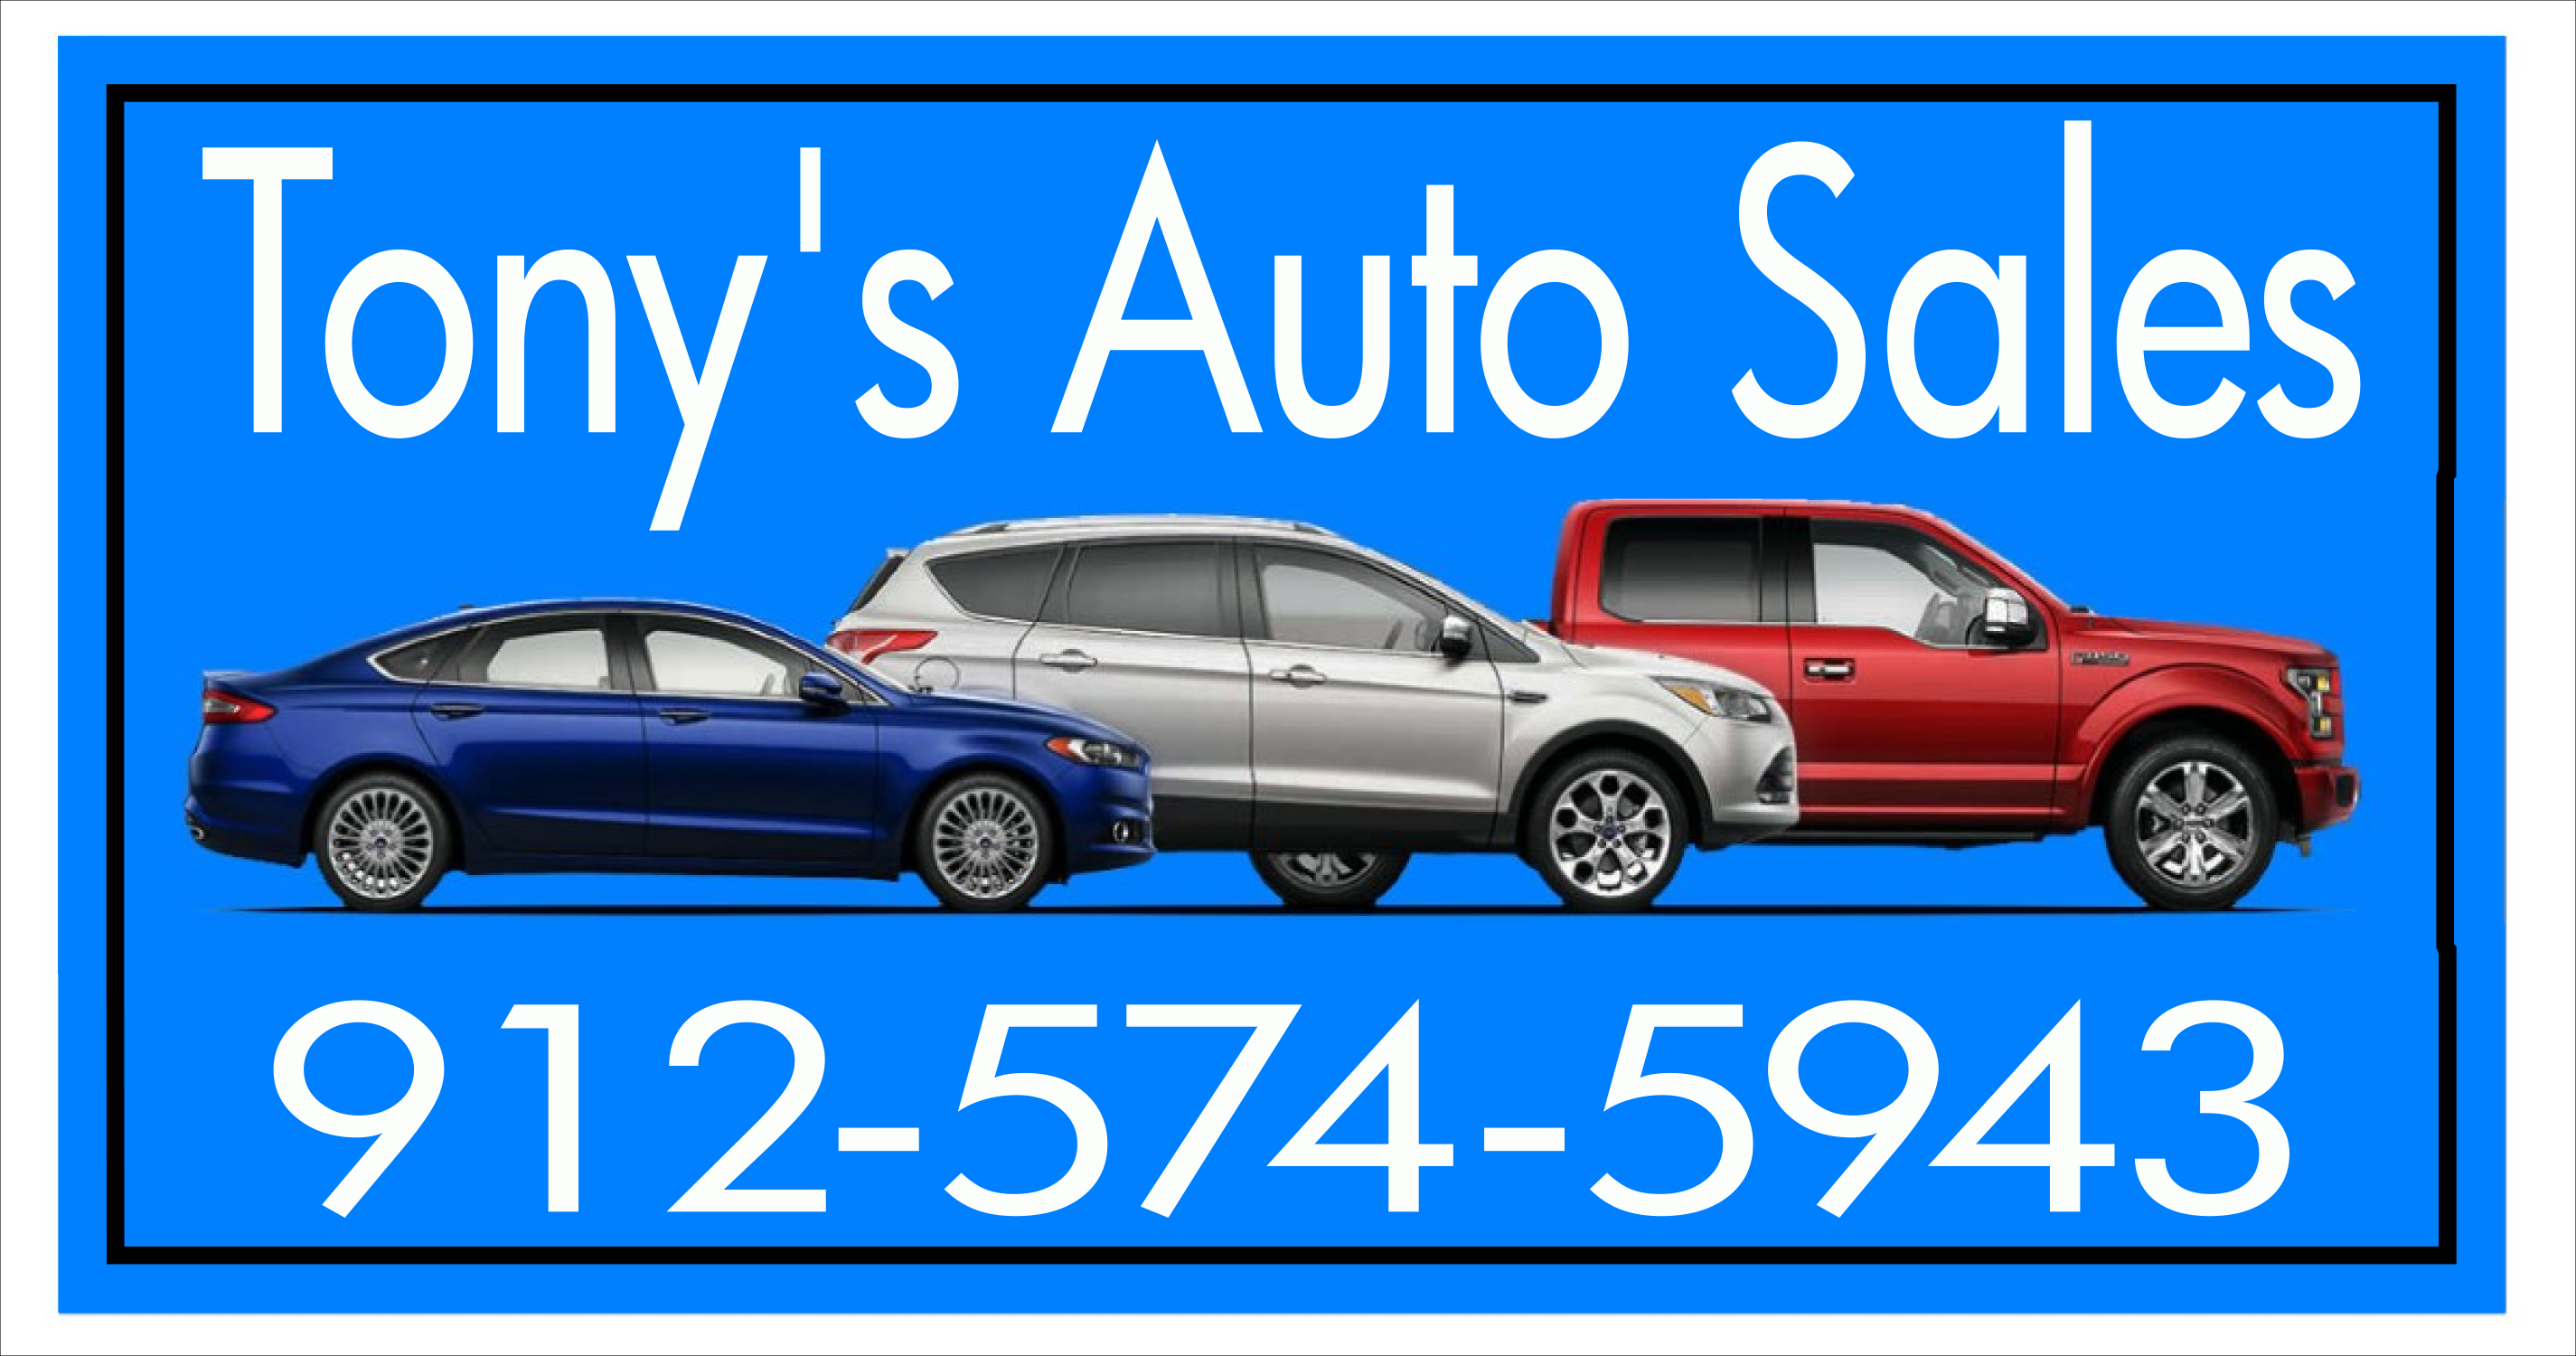 Car Dealerships Brunswick Ga >> Home Tony S Auto Sales Used Cars For Sale Brunswick Ga